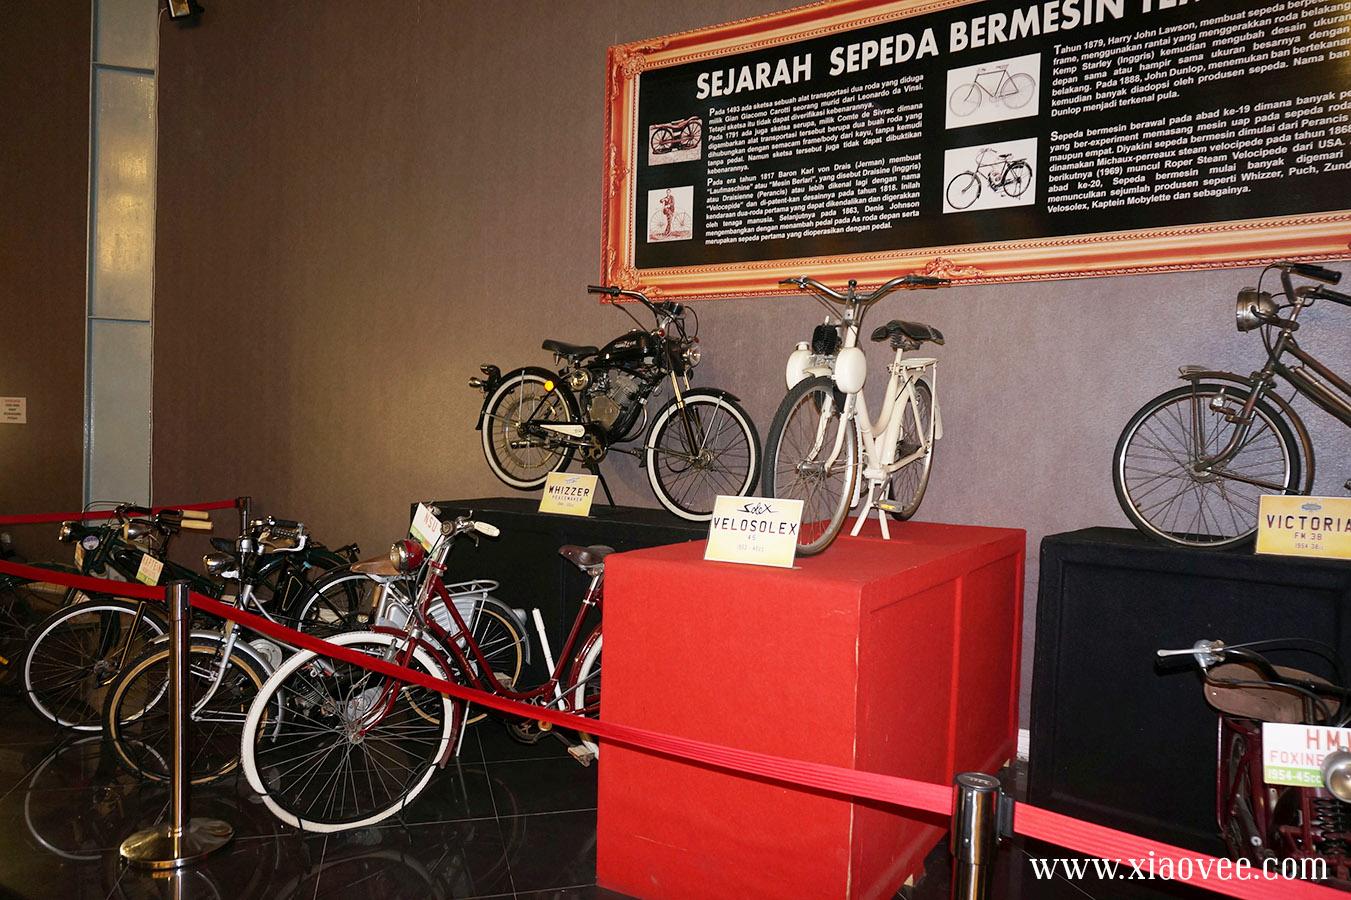 Museum Angkut, Transport Museum in Batu Indonesia review